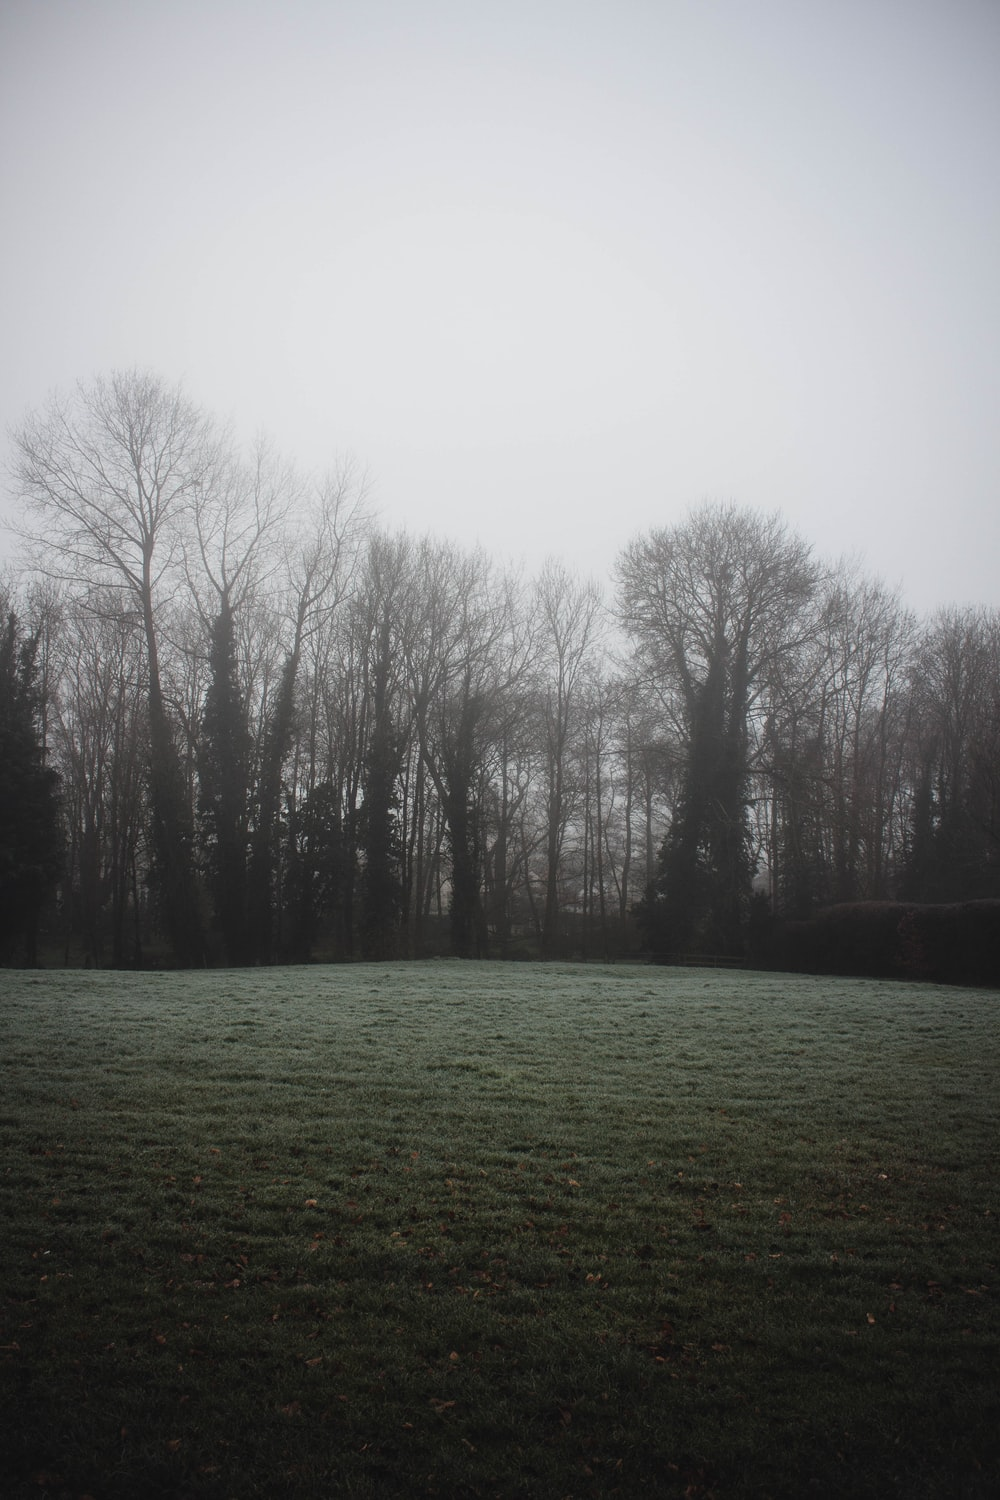 green grass field with bare trees under white sky during daytime